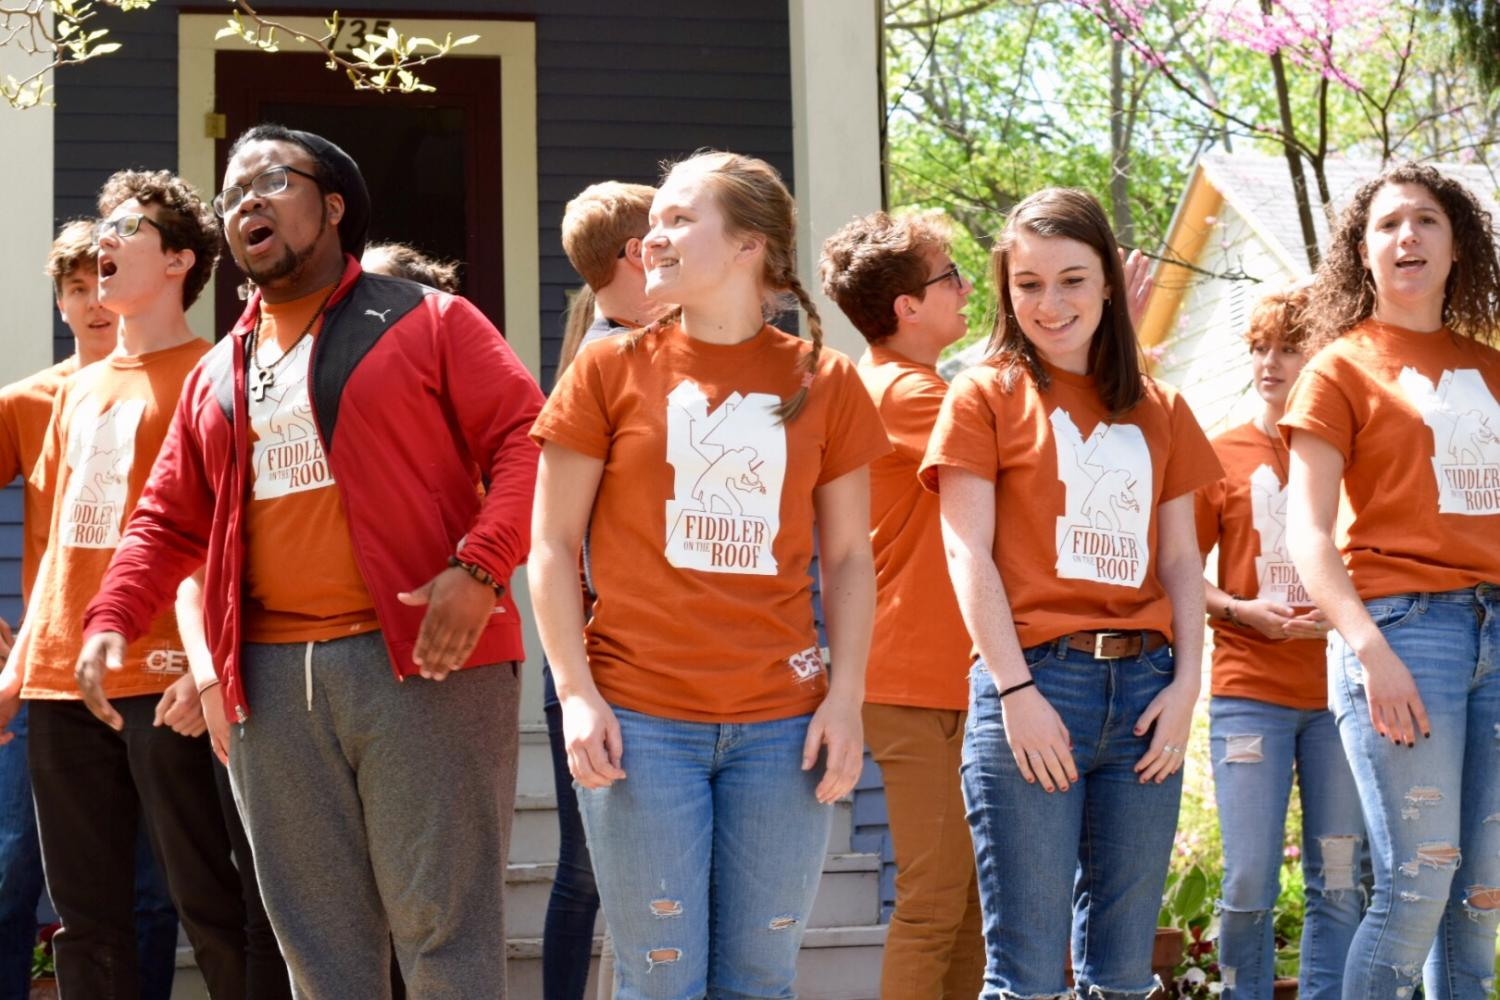 Clarence Collins III, Ellen Reed, Isabel Ratner, and others dance and sing sporting orange t-shirts from the show.